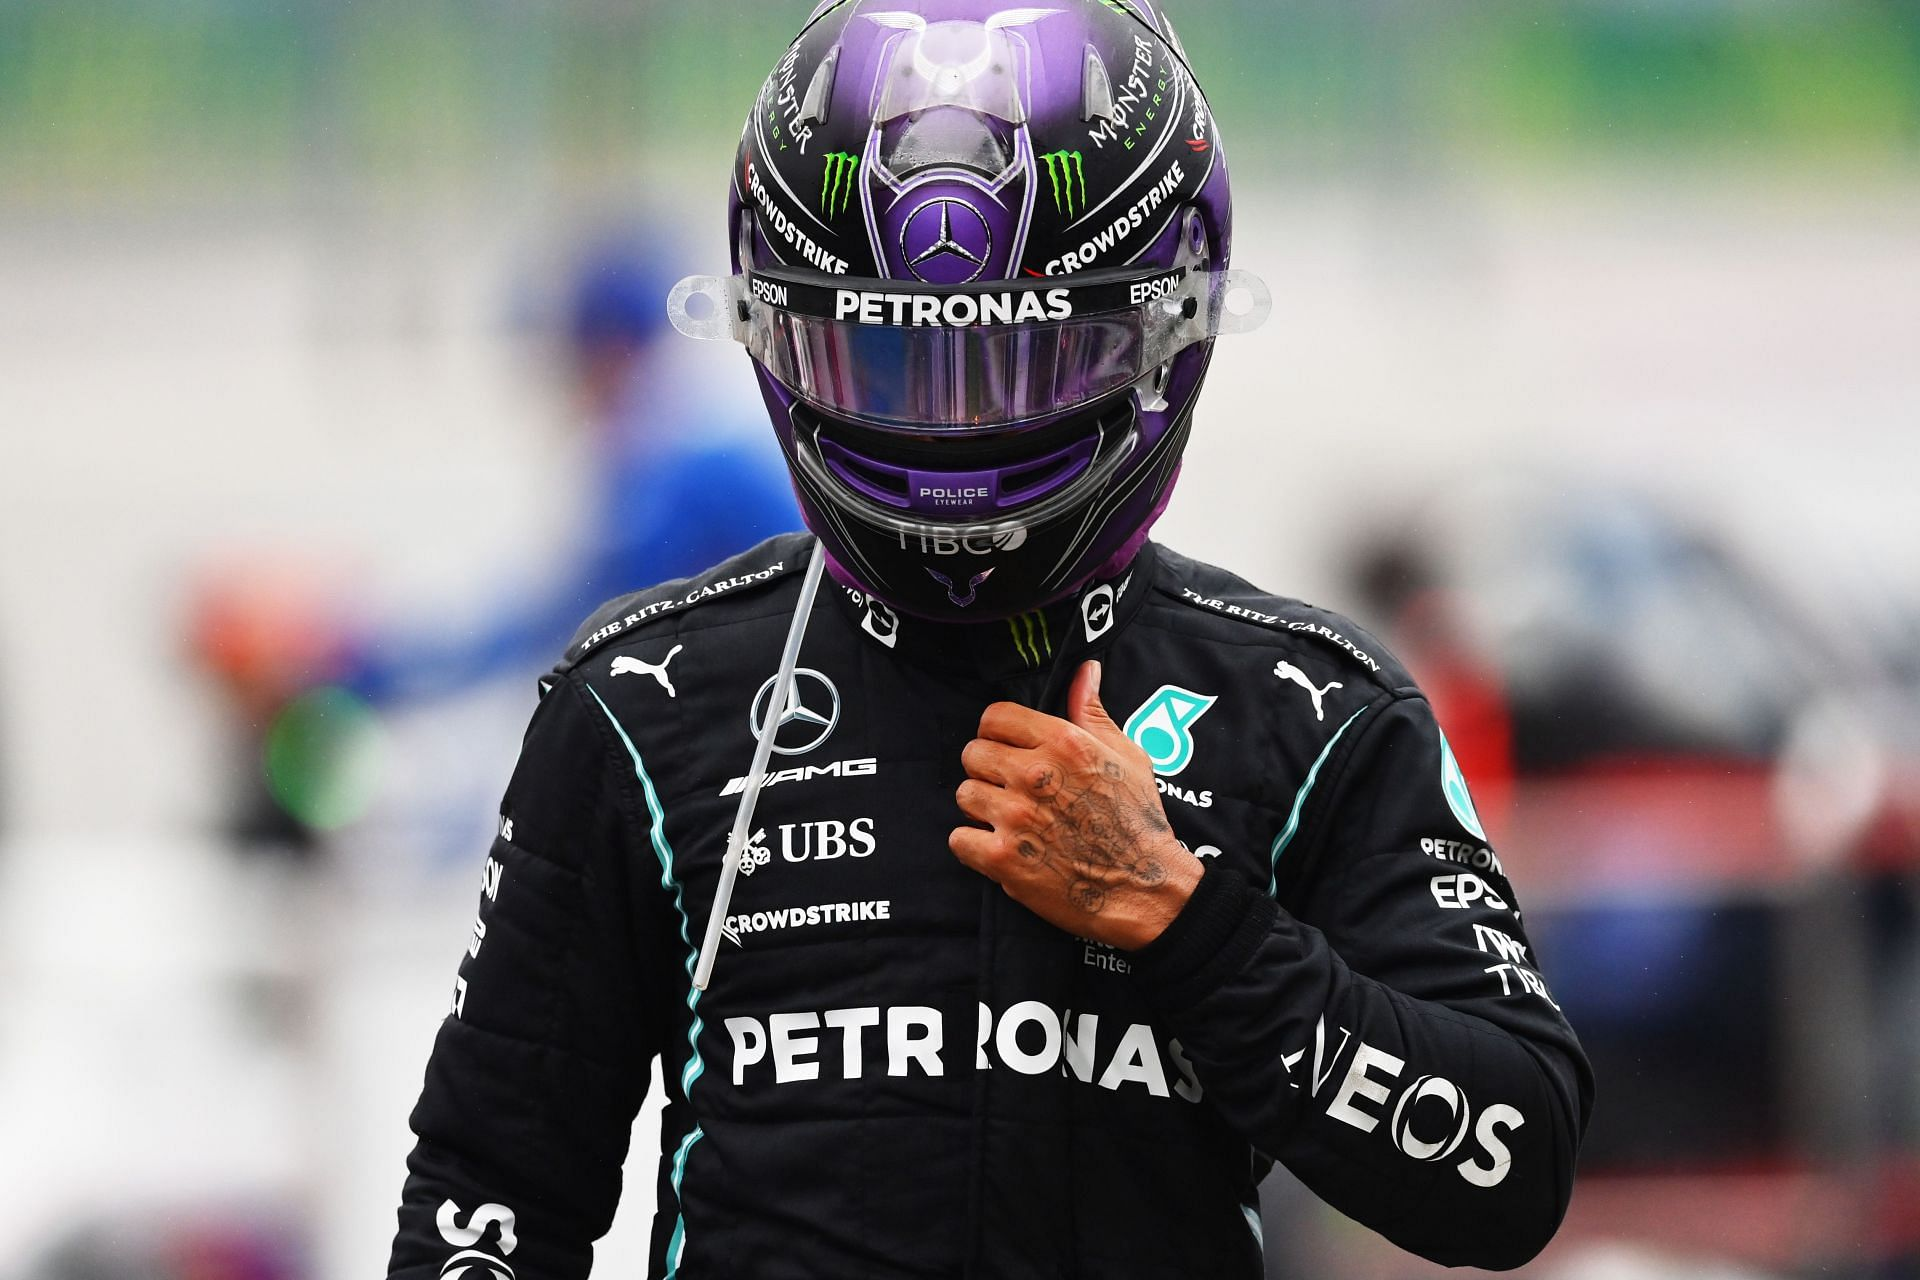 Lewis Hamilton was furious at the team for its decision to pit him during the Turkish Grand Prix. Photo: Dan Mullan/Getty Images